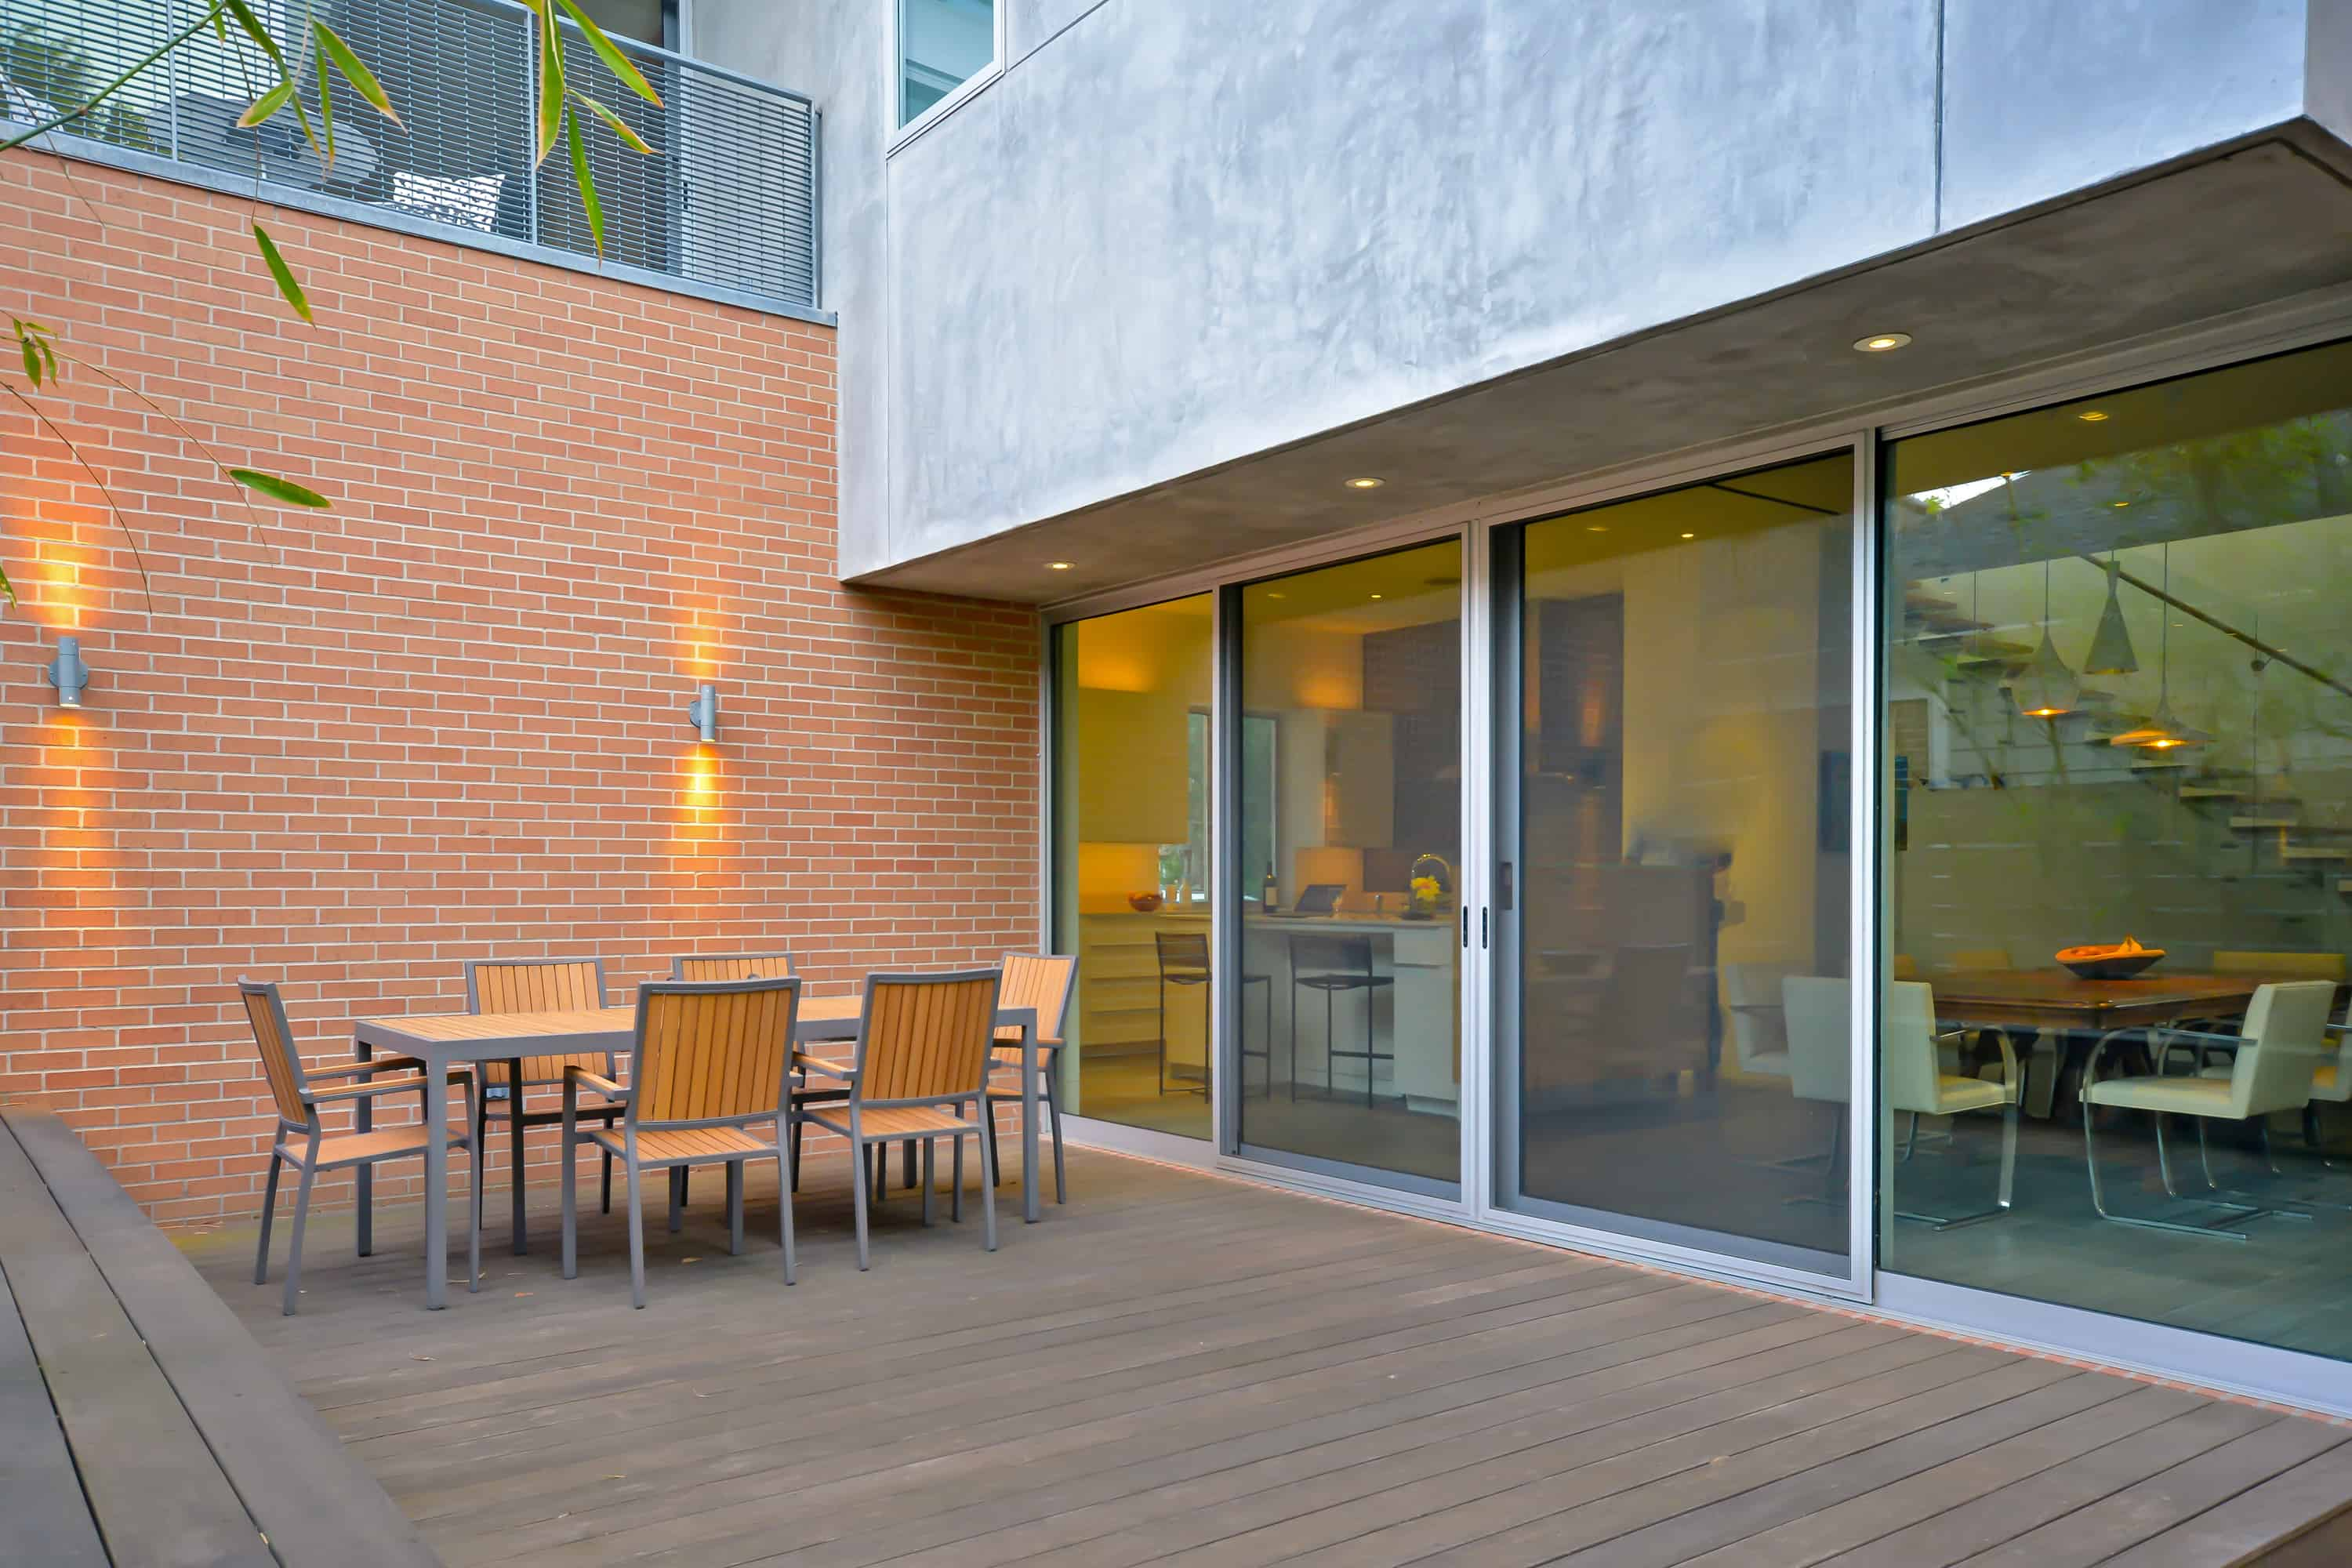 West University Brick Wall and Deck with outdoor dining